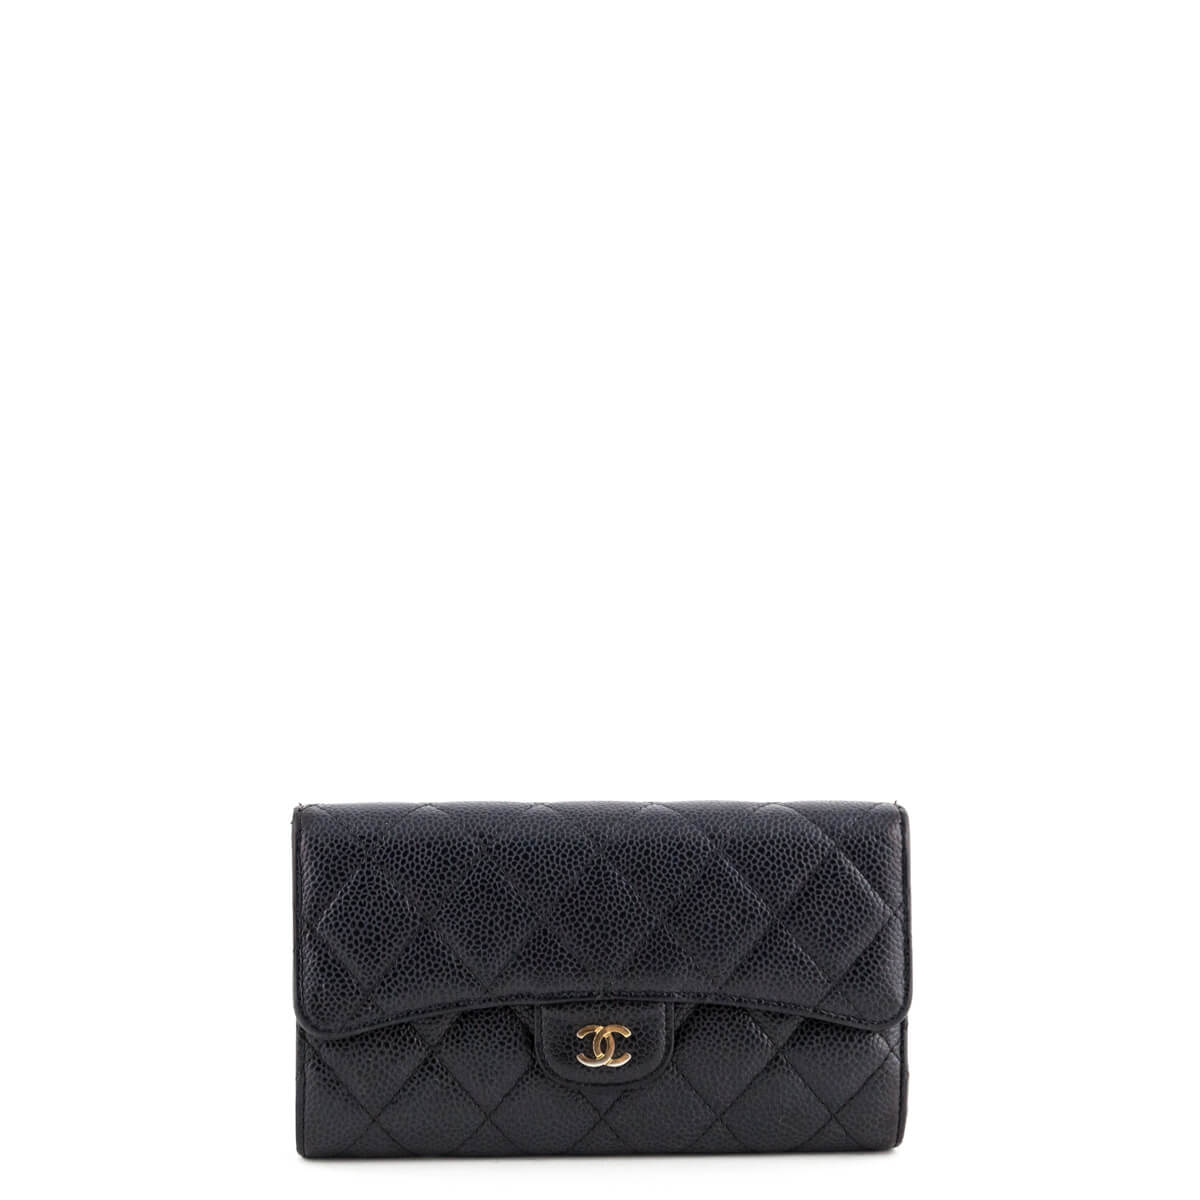 1cc14d4cb0cd Chanel Black Caviar Quilted Large Flap Wallet - LOVE that BAG - Preowned  Authentic Designer Handbags ...